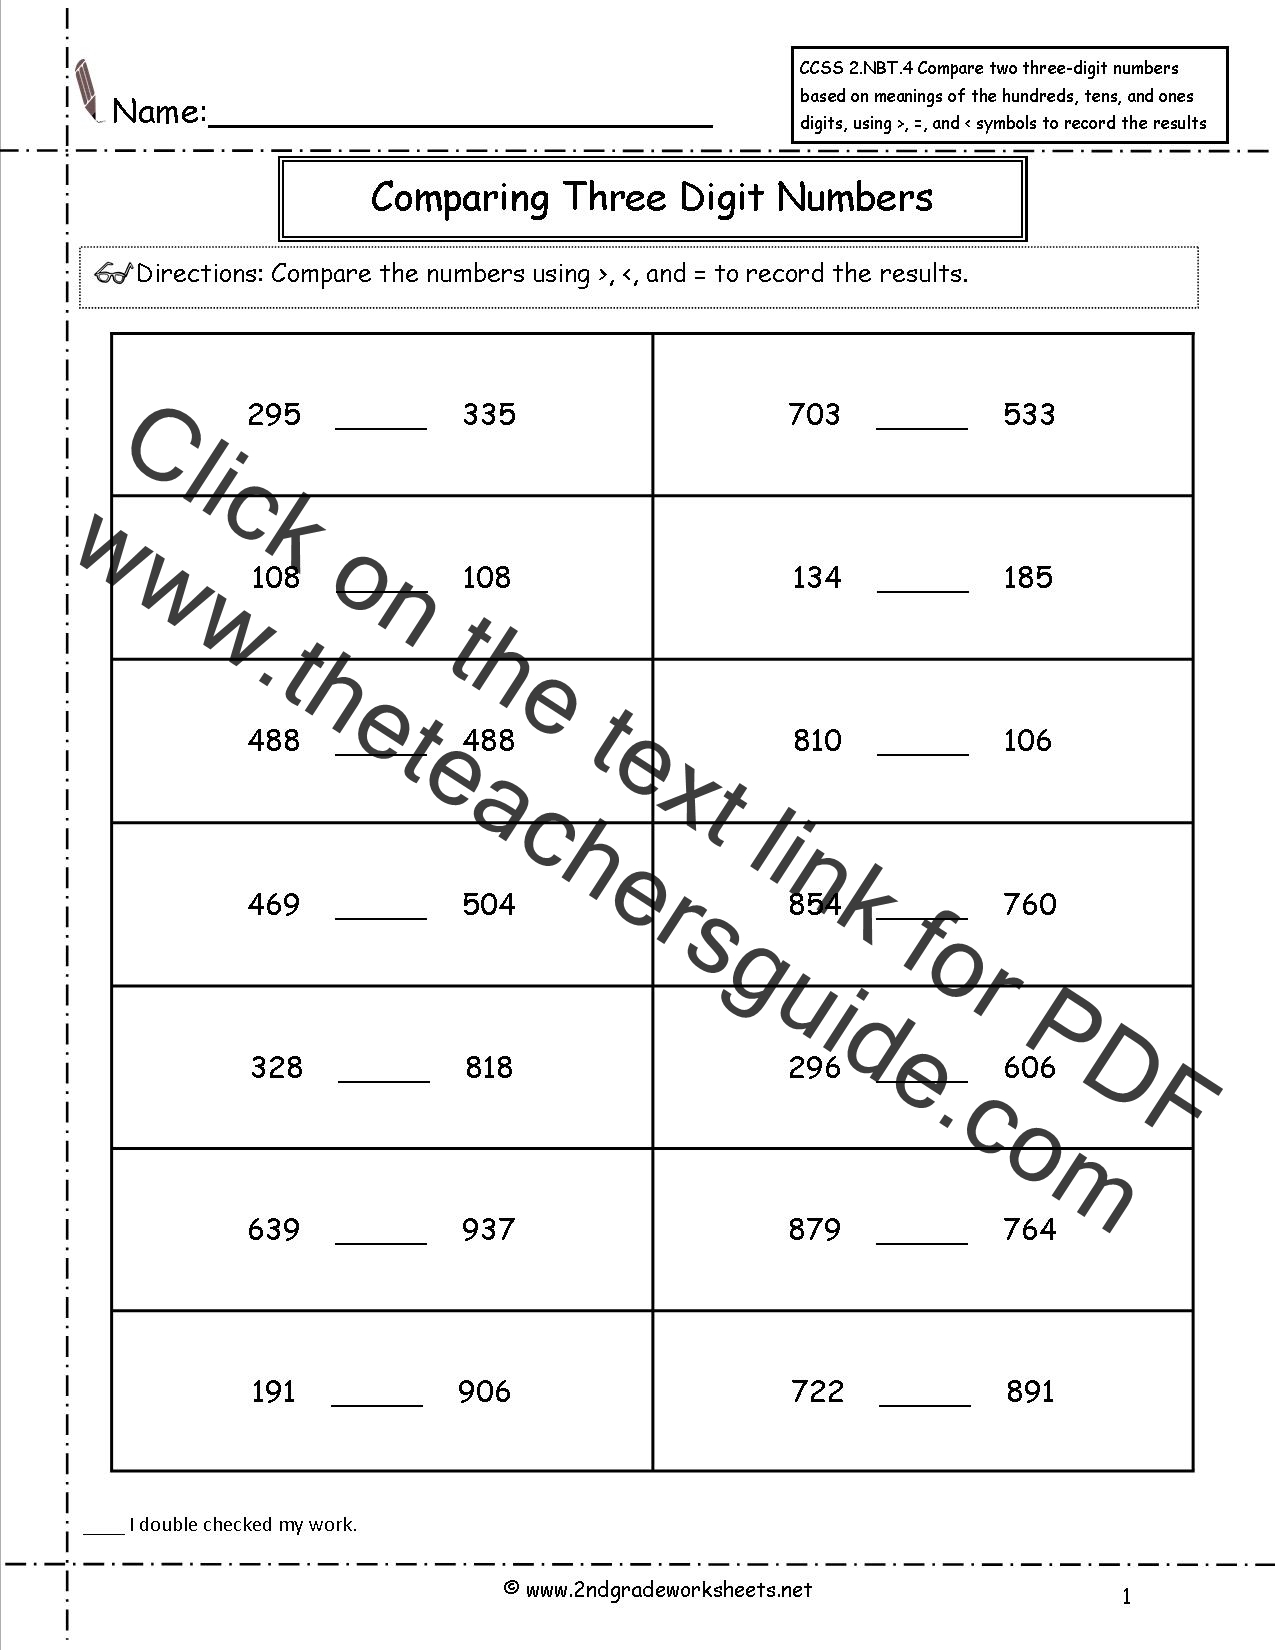 worksheet Common Core Math Grade 4 Worksheets 2nd grade math common core state standards worksheets ccss 2 nbt 4 worksheets